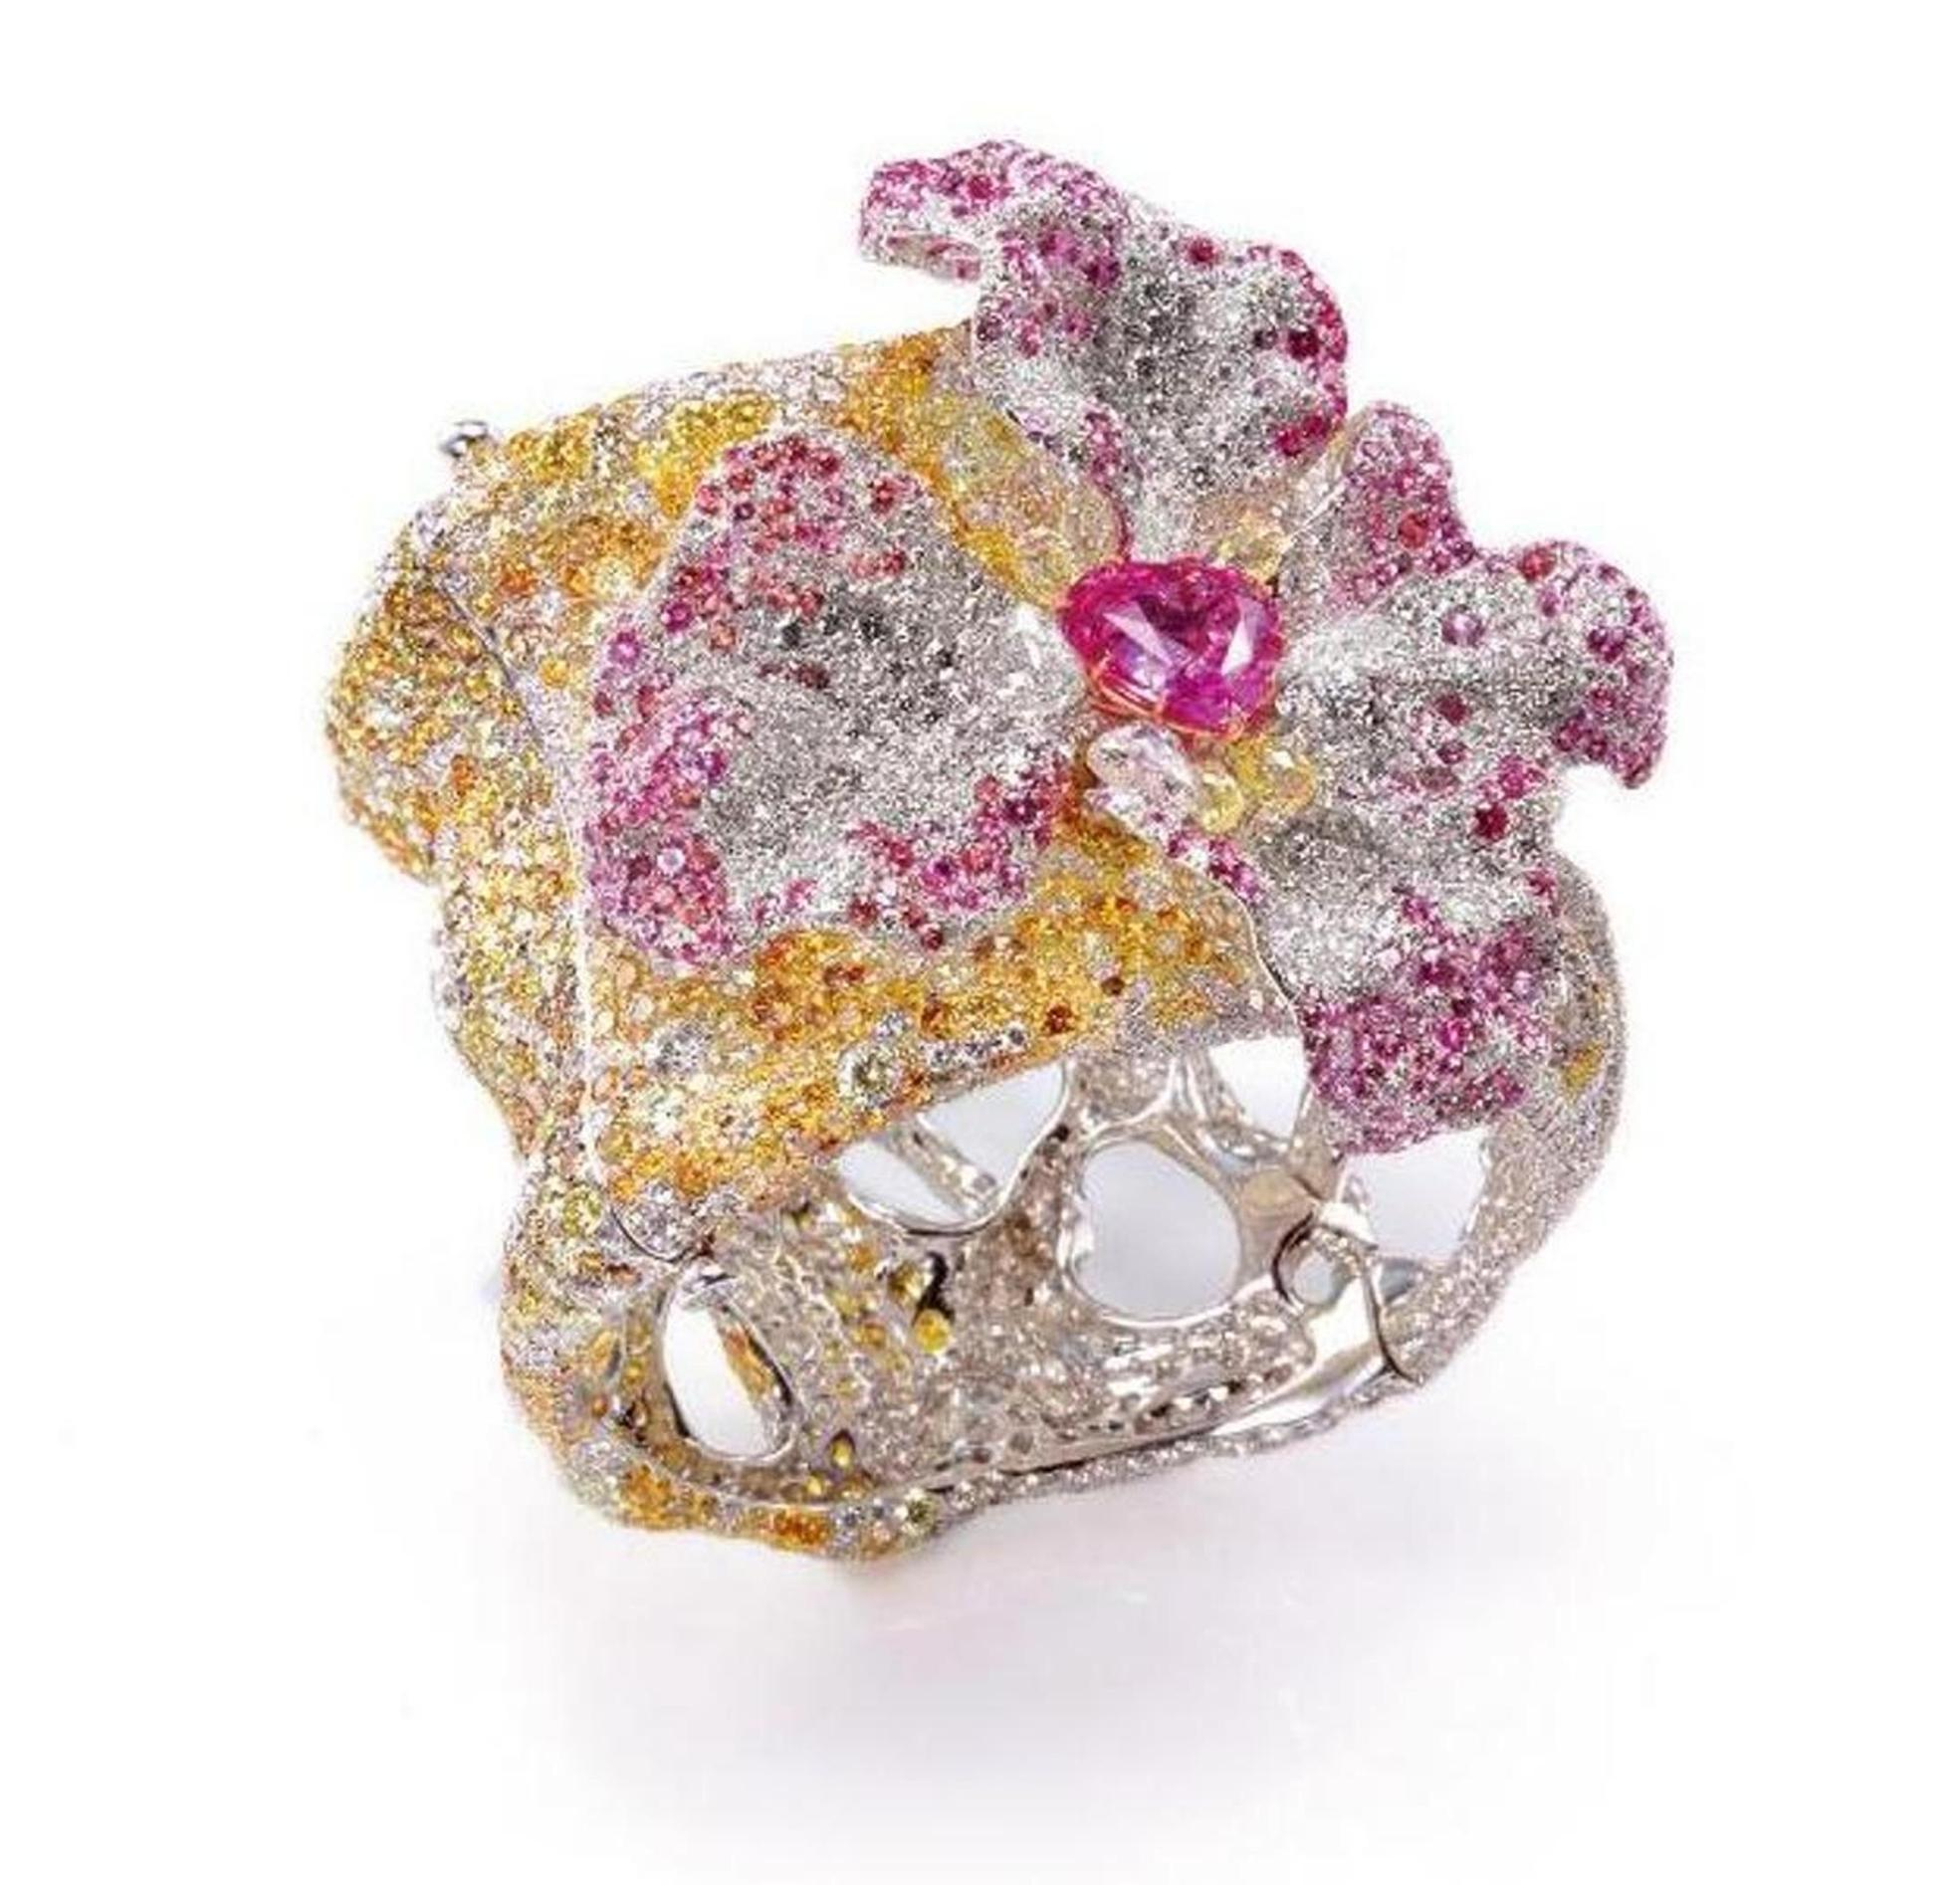 copy_of_cindy_chao_2011_masterpiece_solstice_cuff.jpg